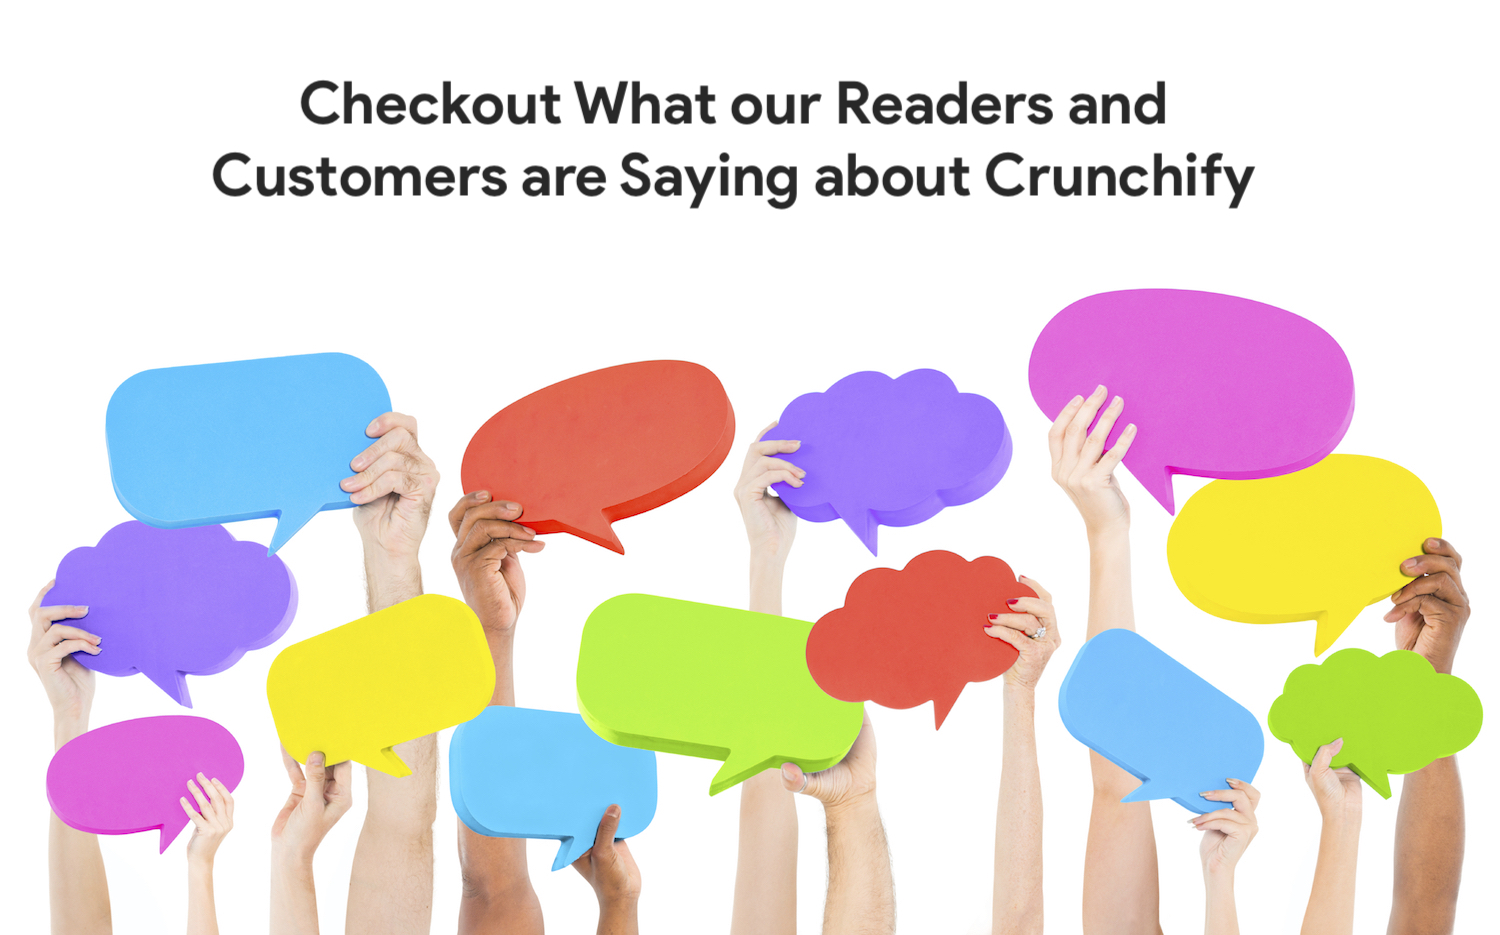 Checkout what our customers are saying about Crunchify